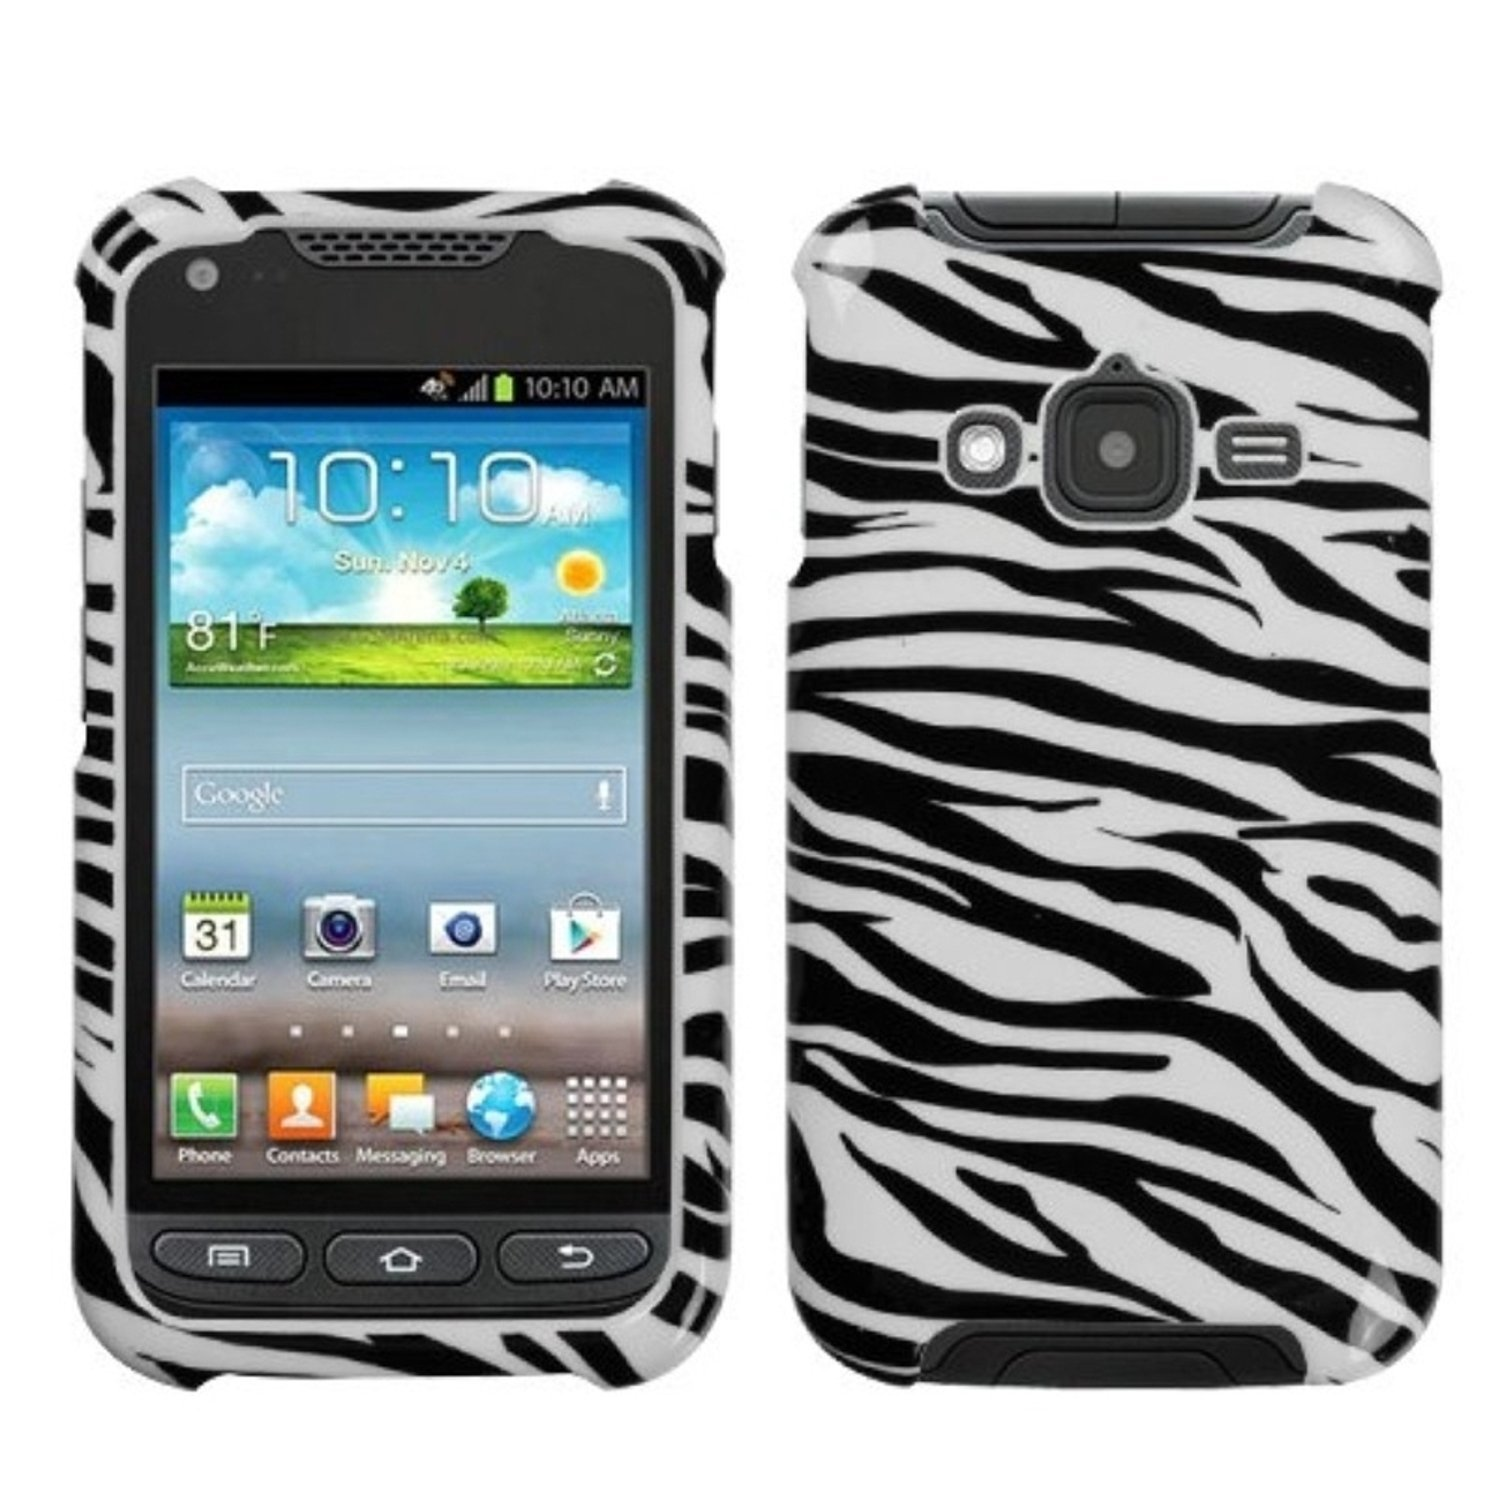 MYBAT SAMI547HPCIM056NP Compact and Durable Protective Cover for Samsung Galaxy Rugby Pro i547 - 1 Pack - Retail Packaging - Zebra Skin